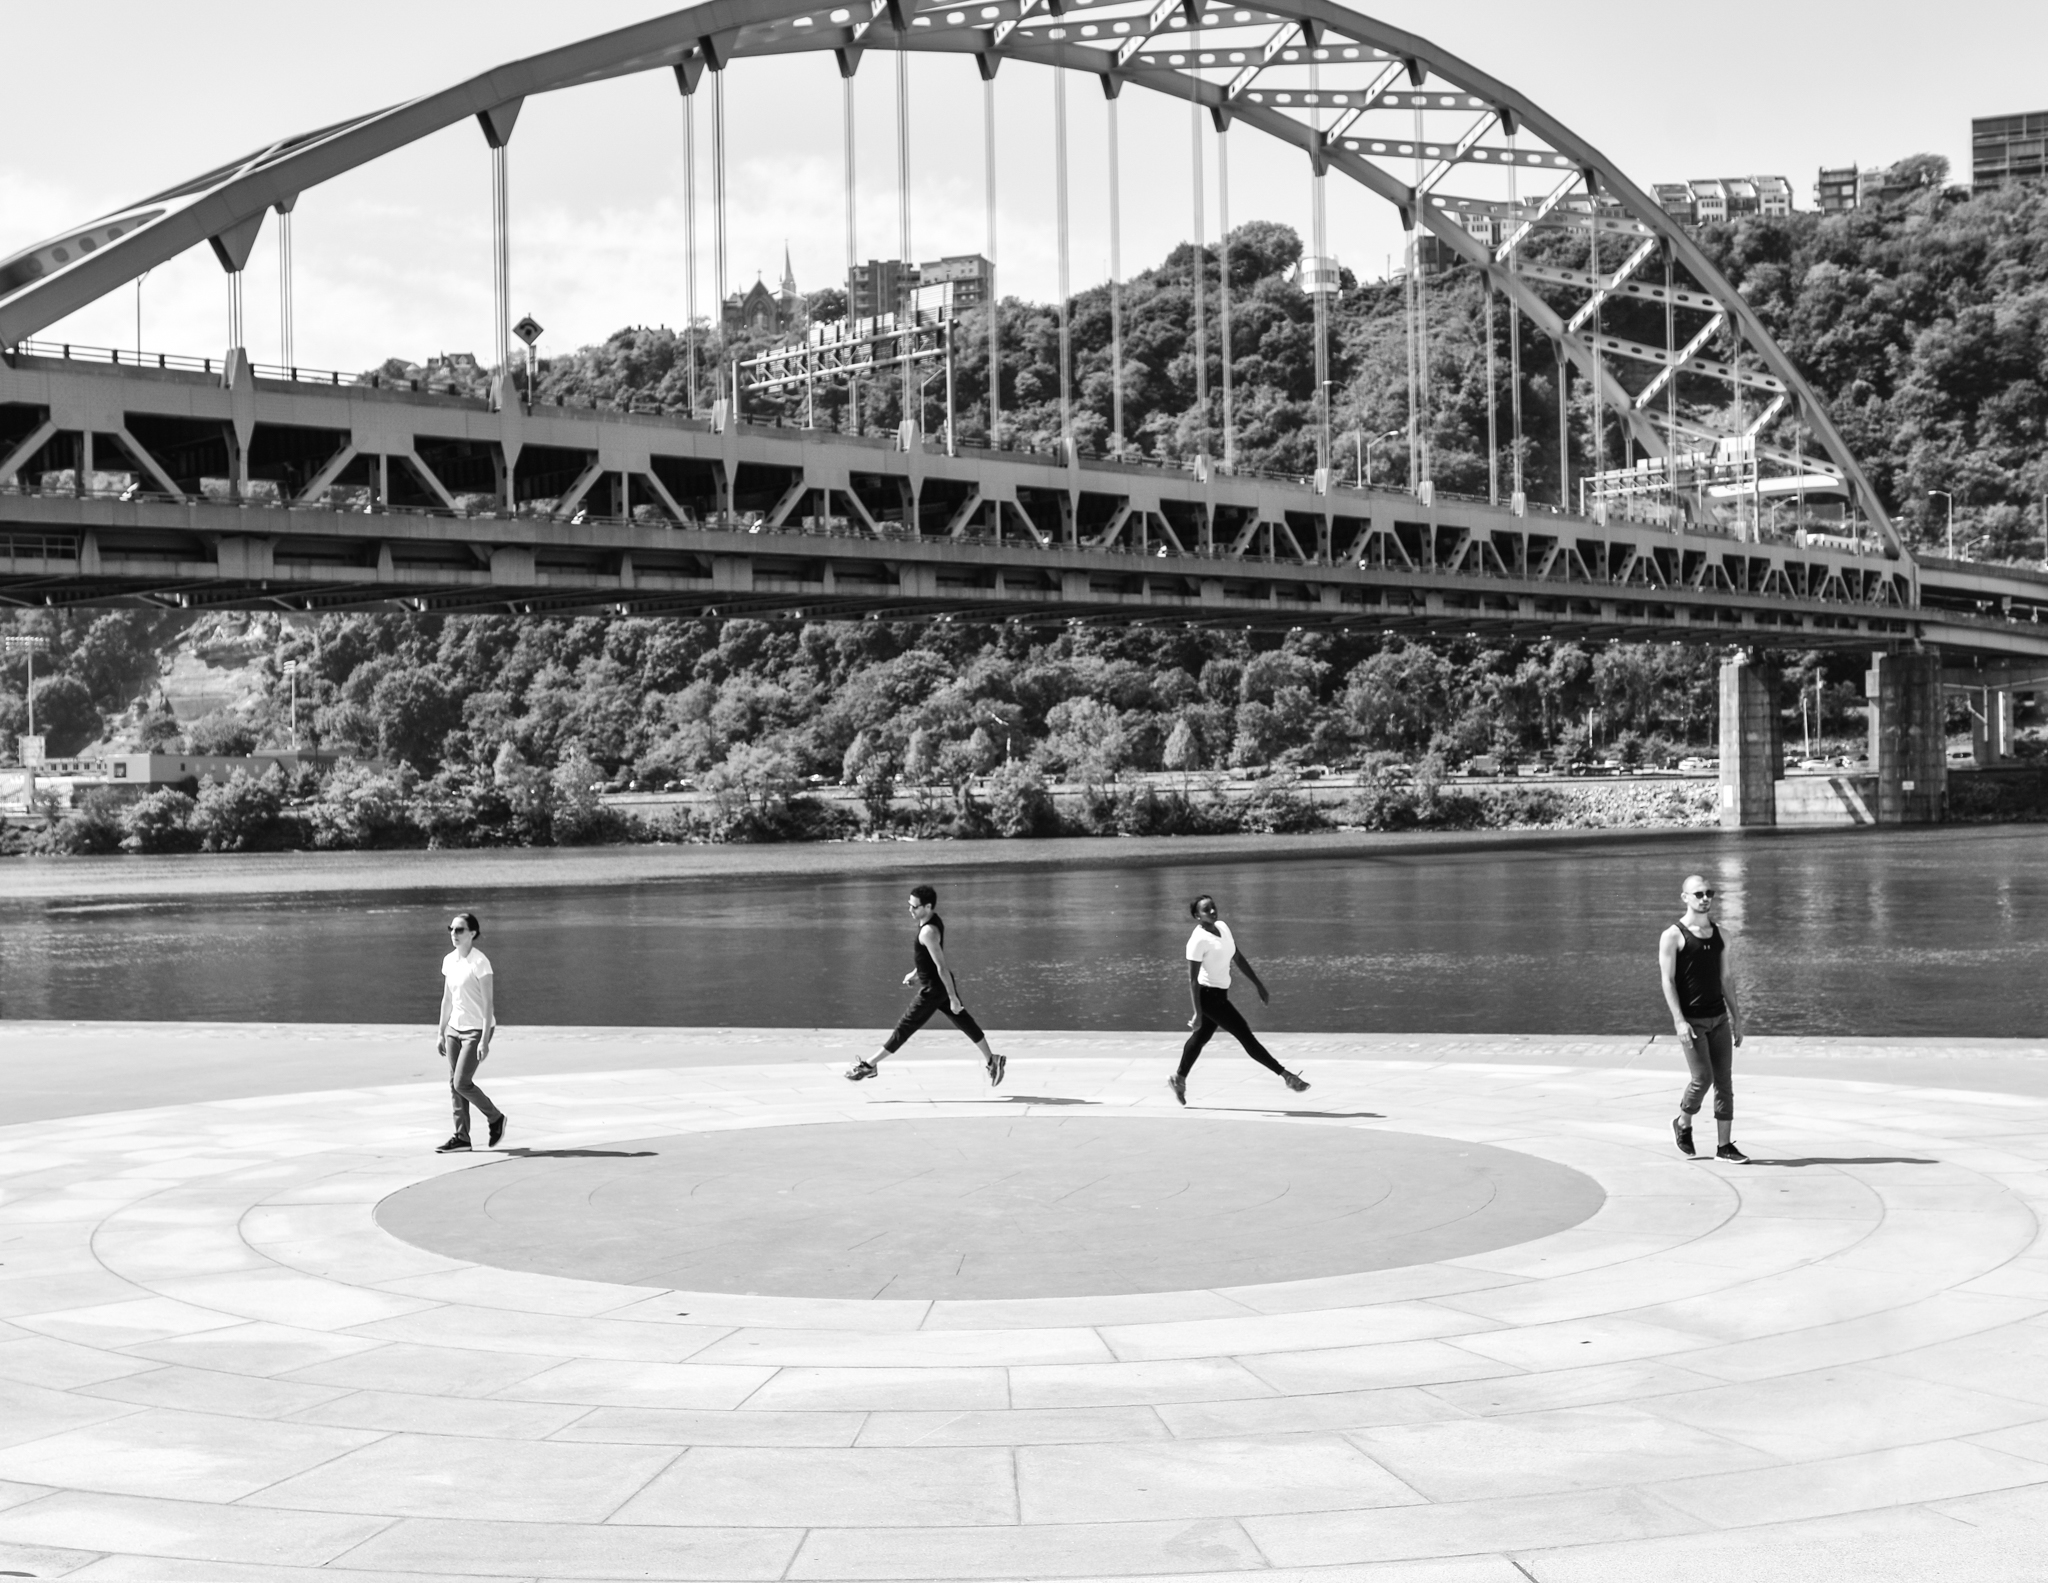 'IT'S TRULY PITTSBURGH' : INCLINE AND BRIDGES ARE BACKDROP FOR THE BLANKET'S FREE DEBUT PERFORMANCES - Read Sarah Bauknecht's preview of Lucinda Childs: The Early Works and learn more about what The Blanket is doing for the dance community.